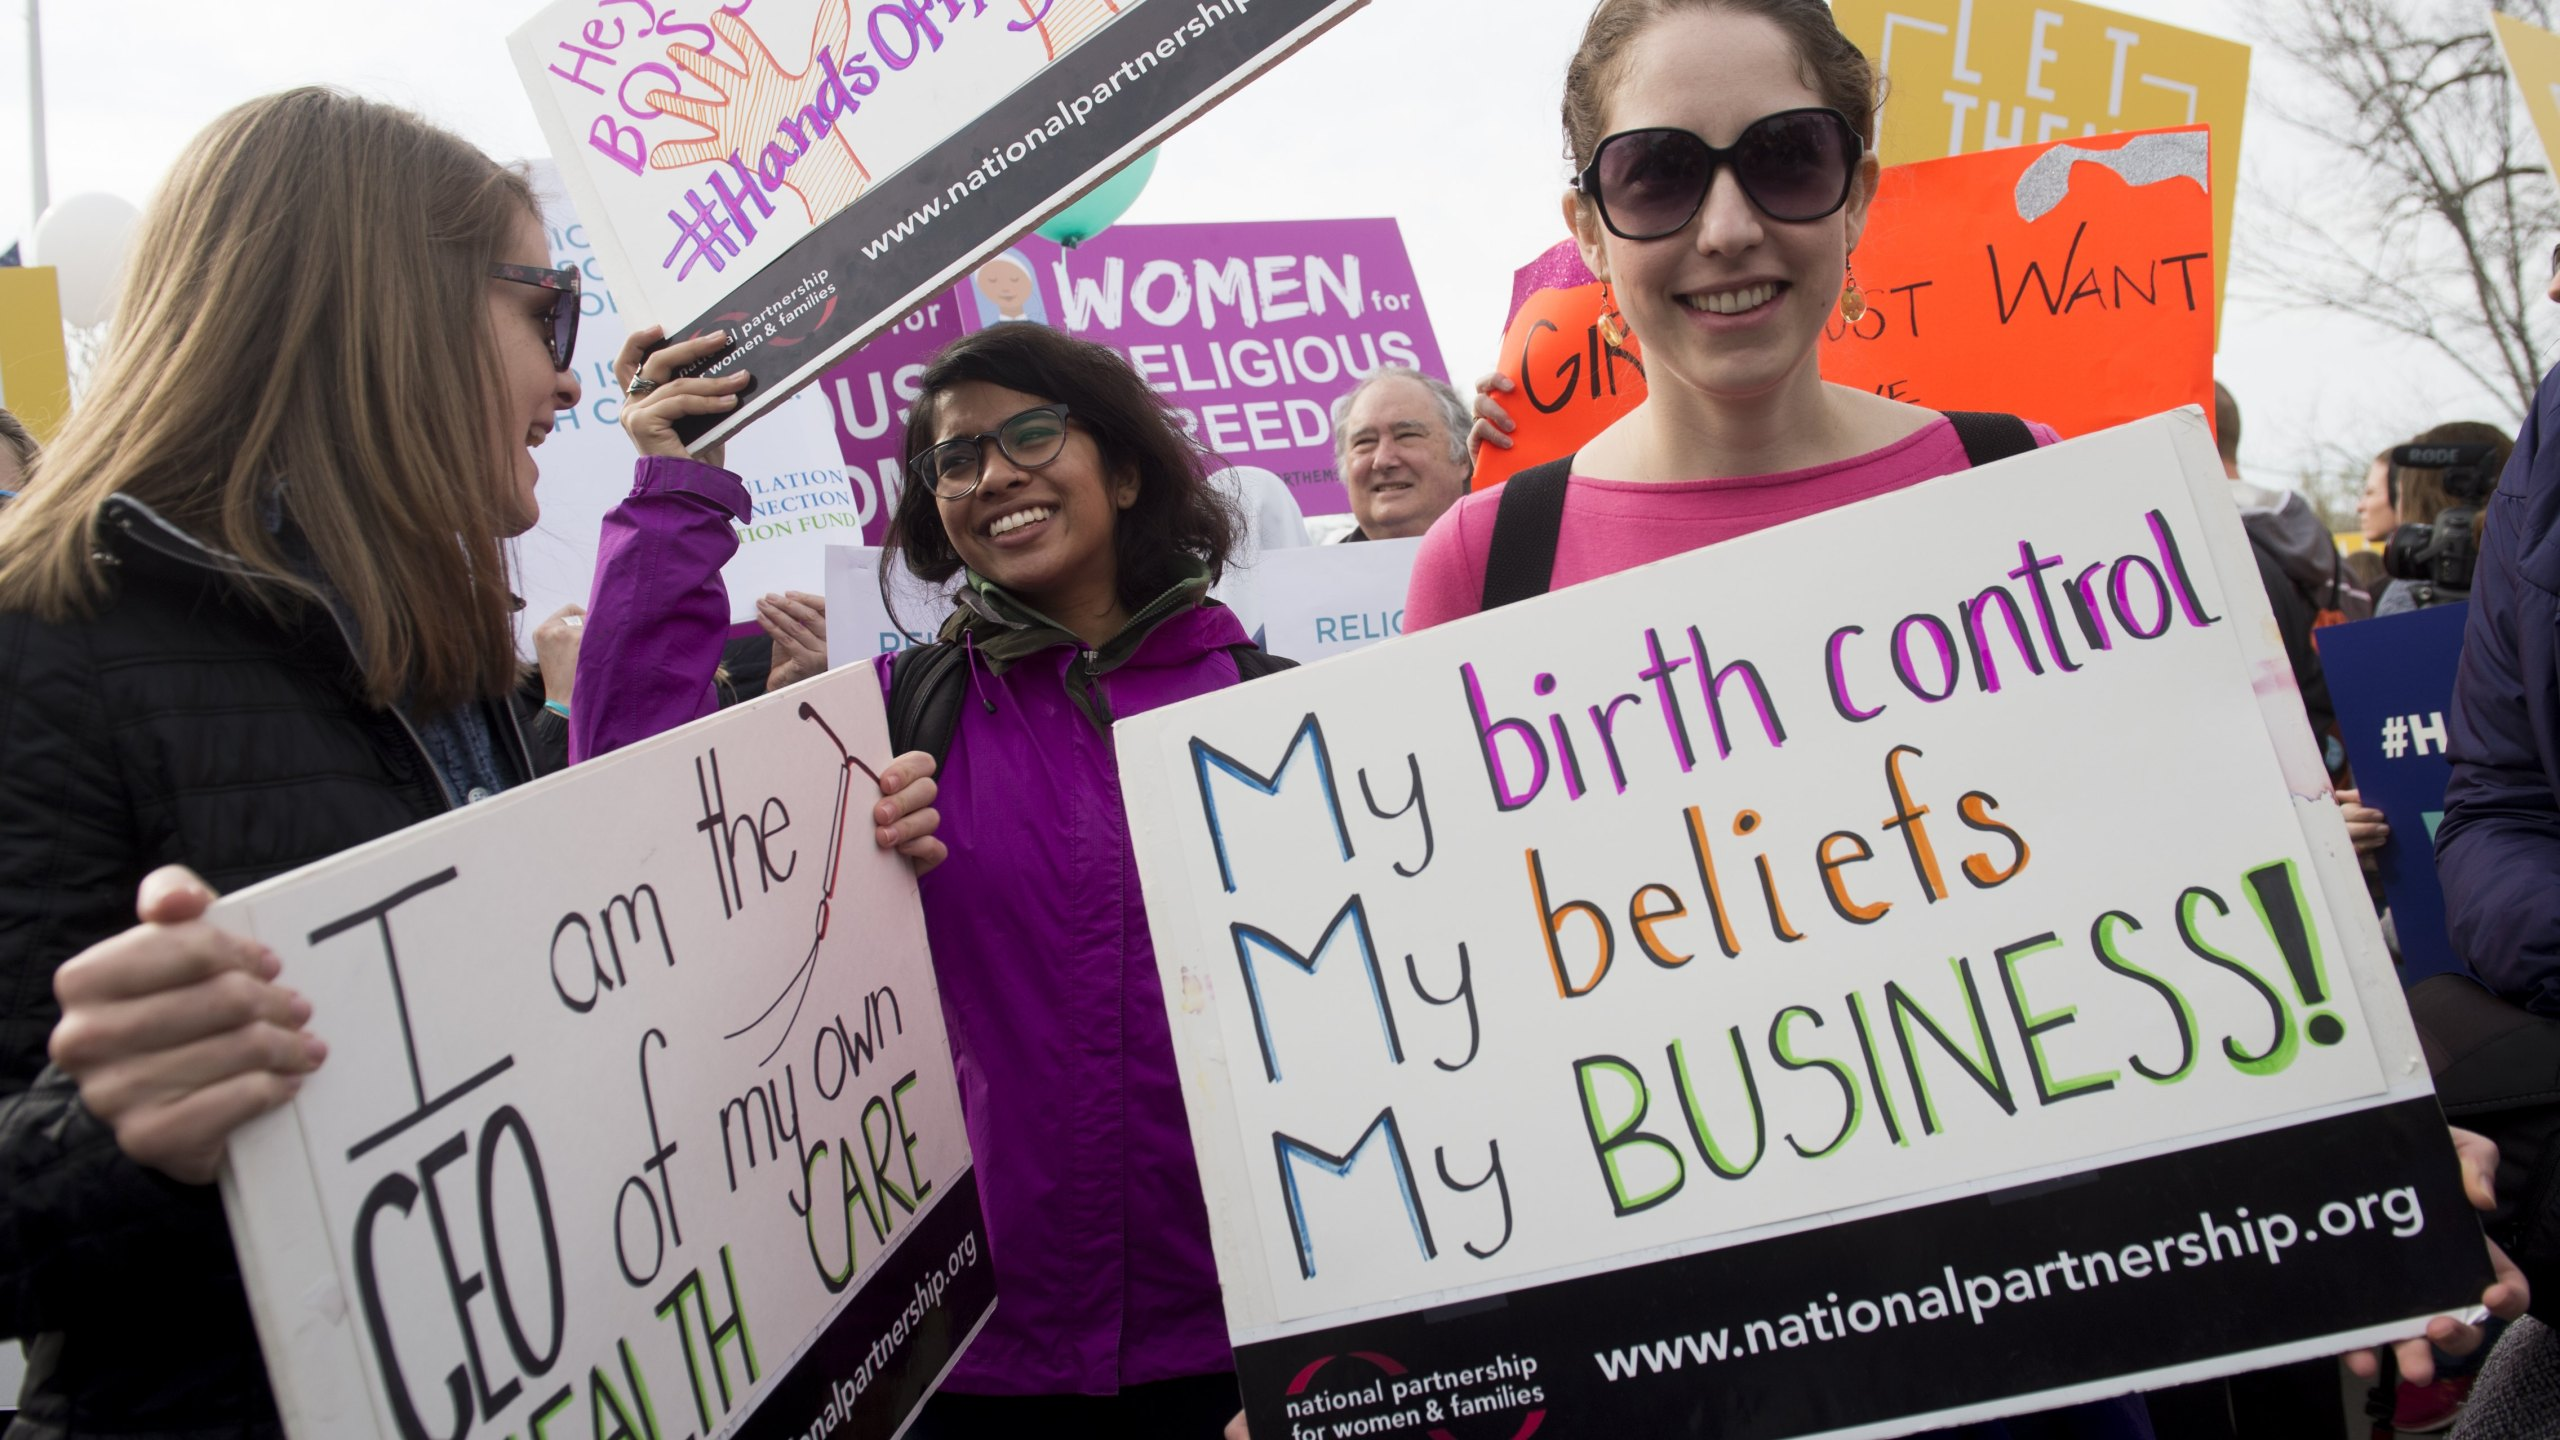 Women's health advocates rally outside the Supreme Court in Washington, D.C. on March 23, 2016. (Credit: SAUL LOEB/AFP/Getty Images)